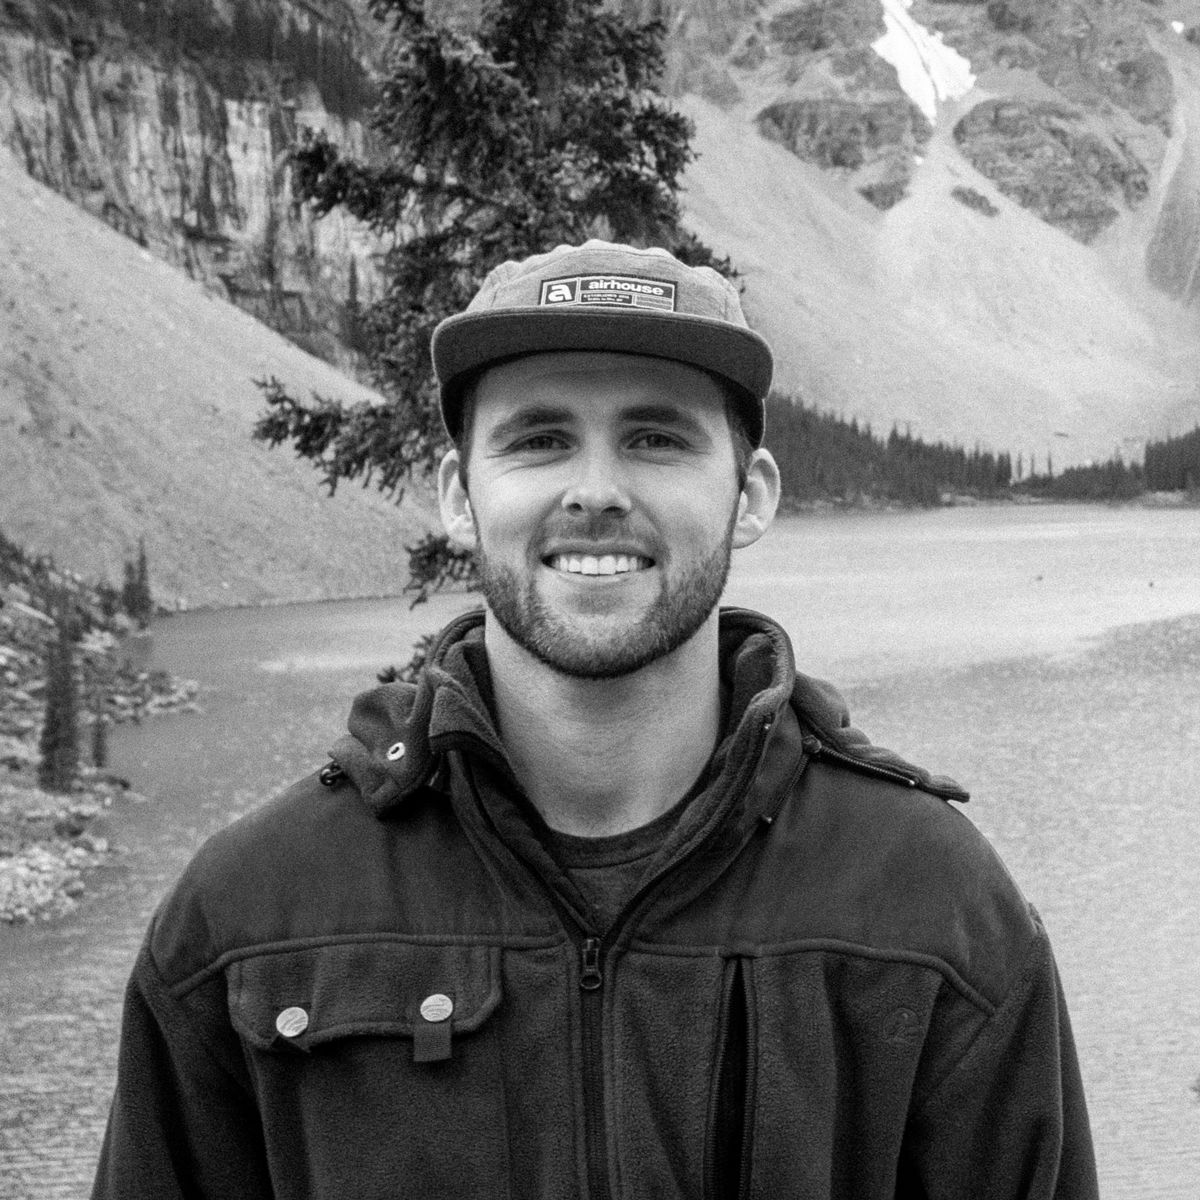 Black and white photo of a man at Moraine Lake